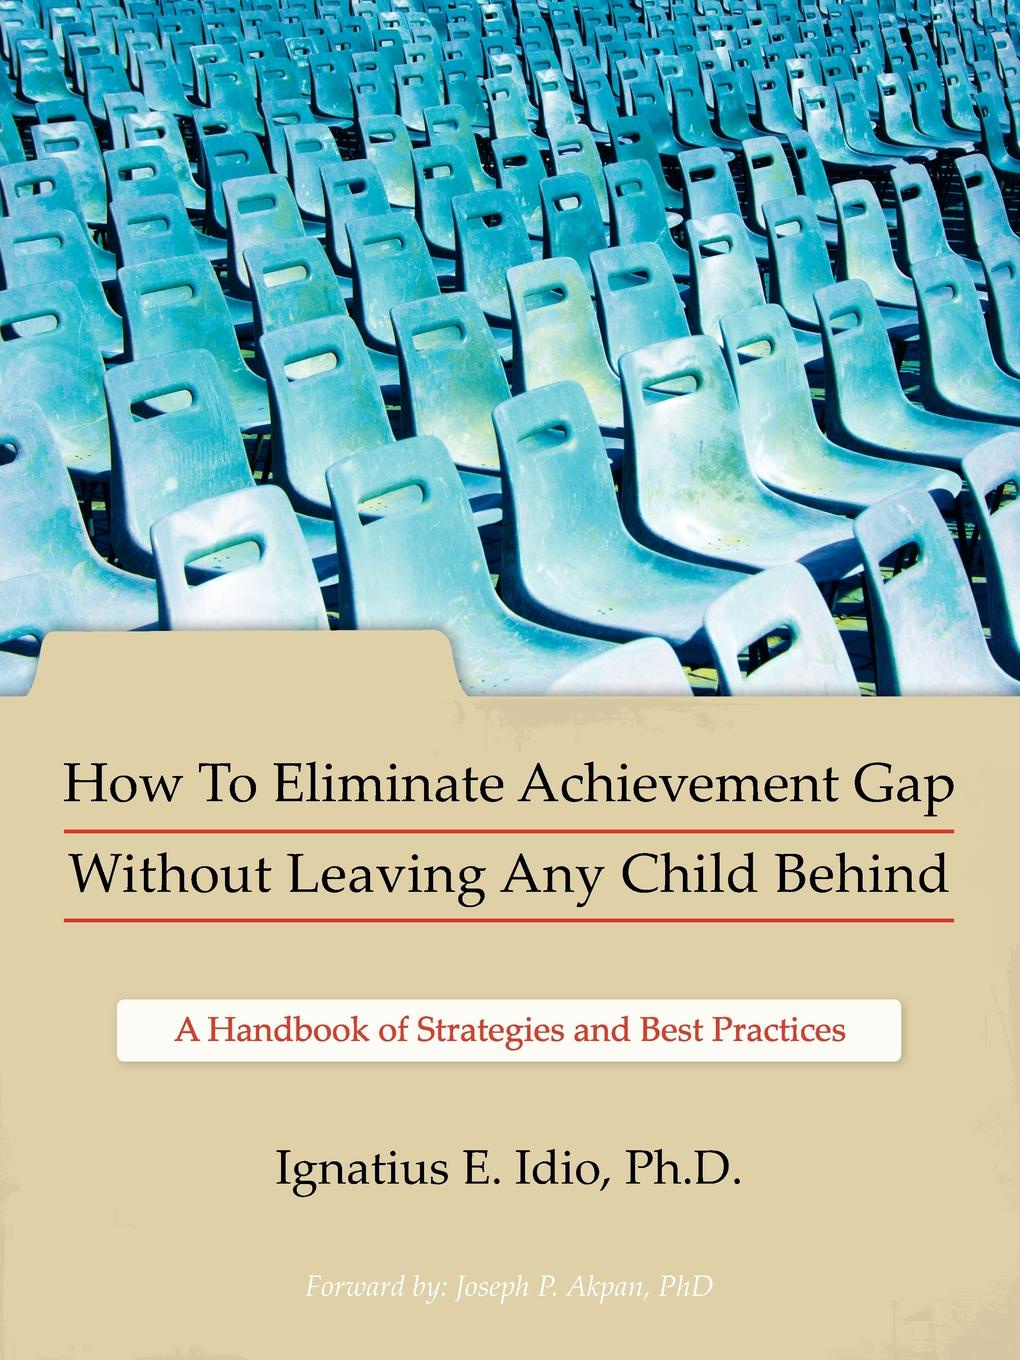 Ignatius E. Idio Ph. D., Ignatius E. Idio How to Eliminate Achievement Gap Without Leaving Any Child Behind. Teacher.s Edition: A Handbook of Strategies and Best Practices rebecca jackson williams the complete learning disabilities handbook ready to use strategies and activities for teaching students with learning disabilities isbn 9781118937686